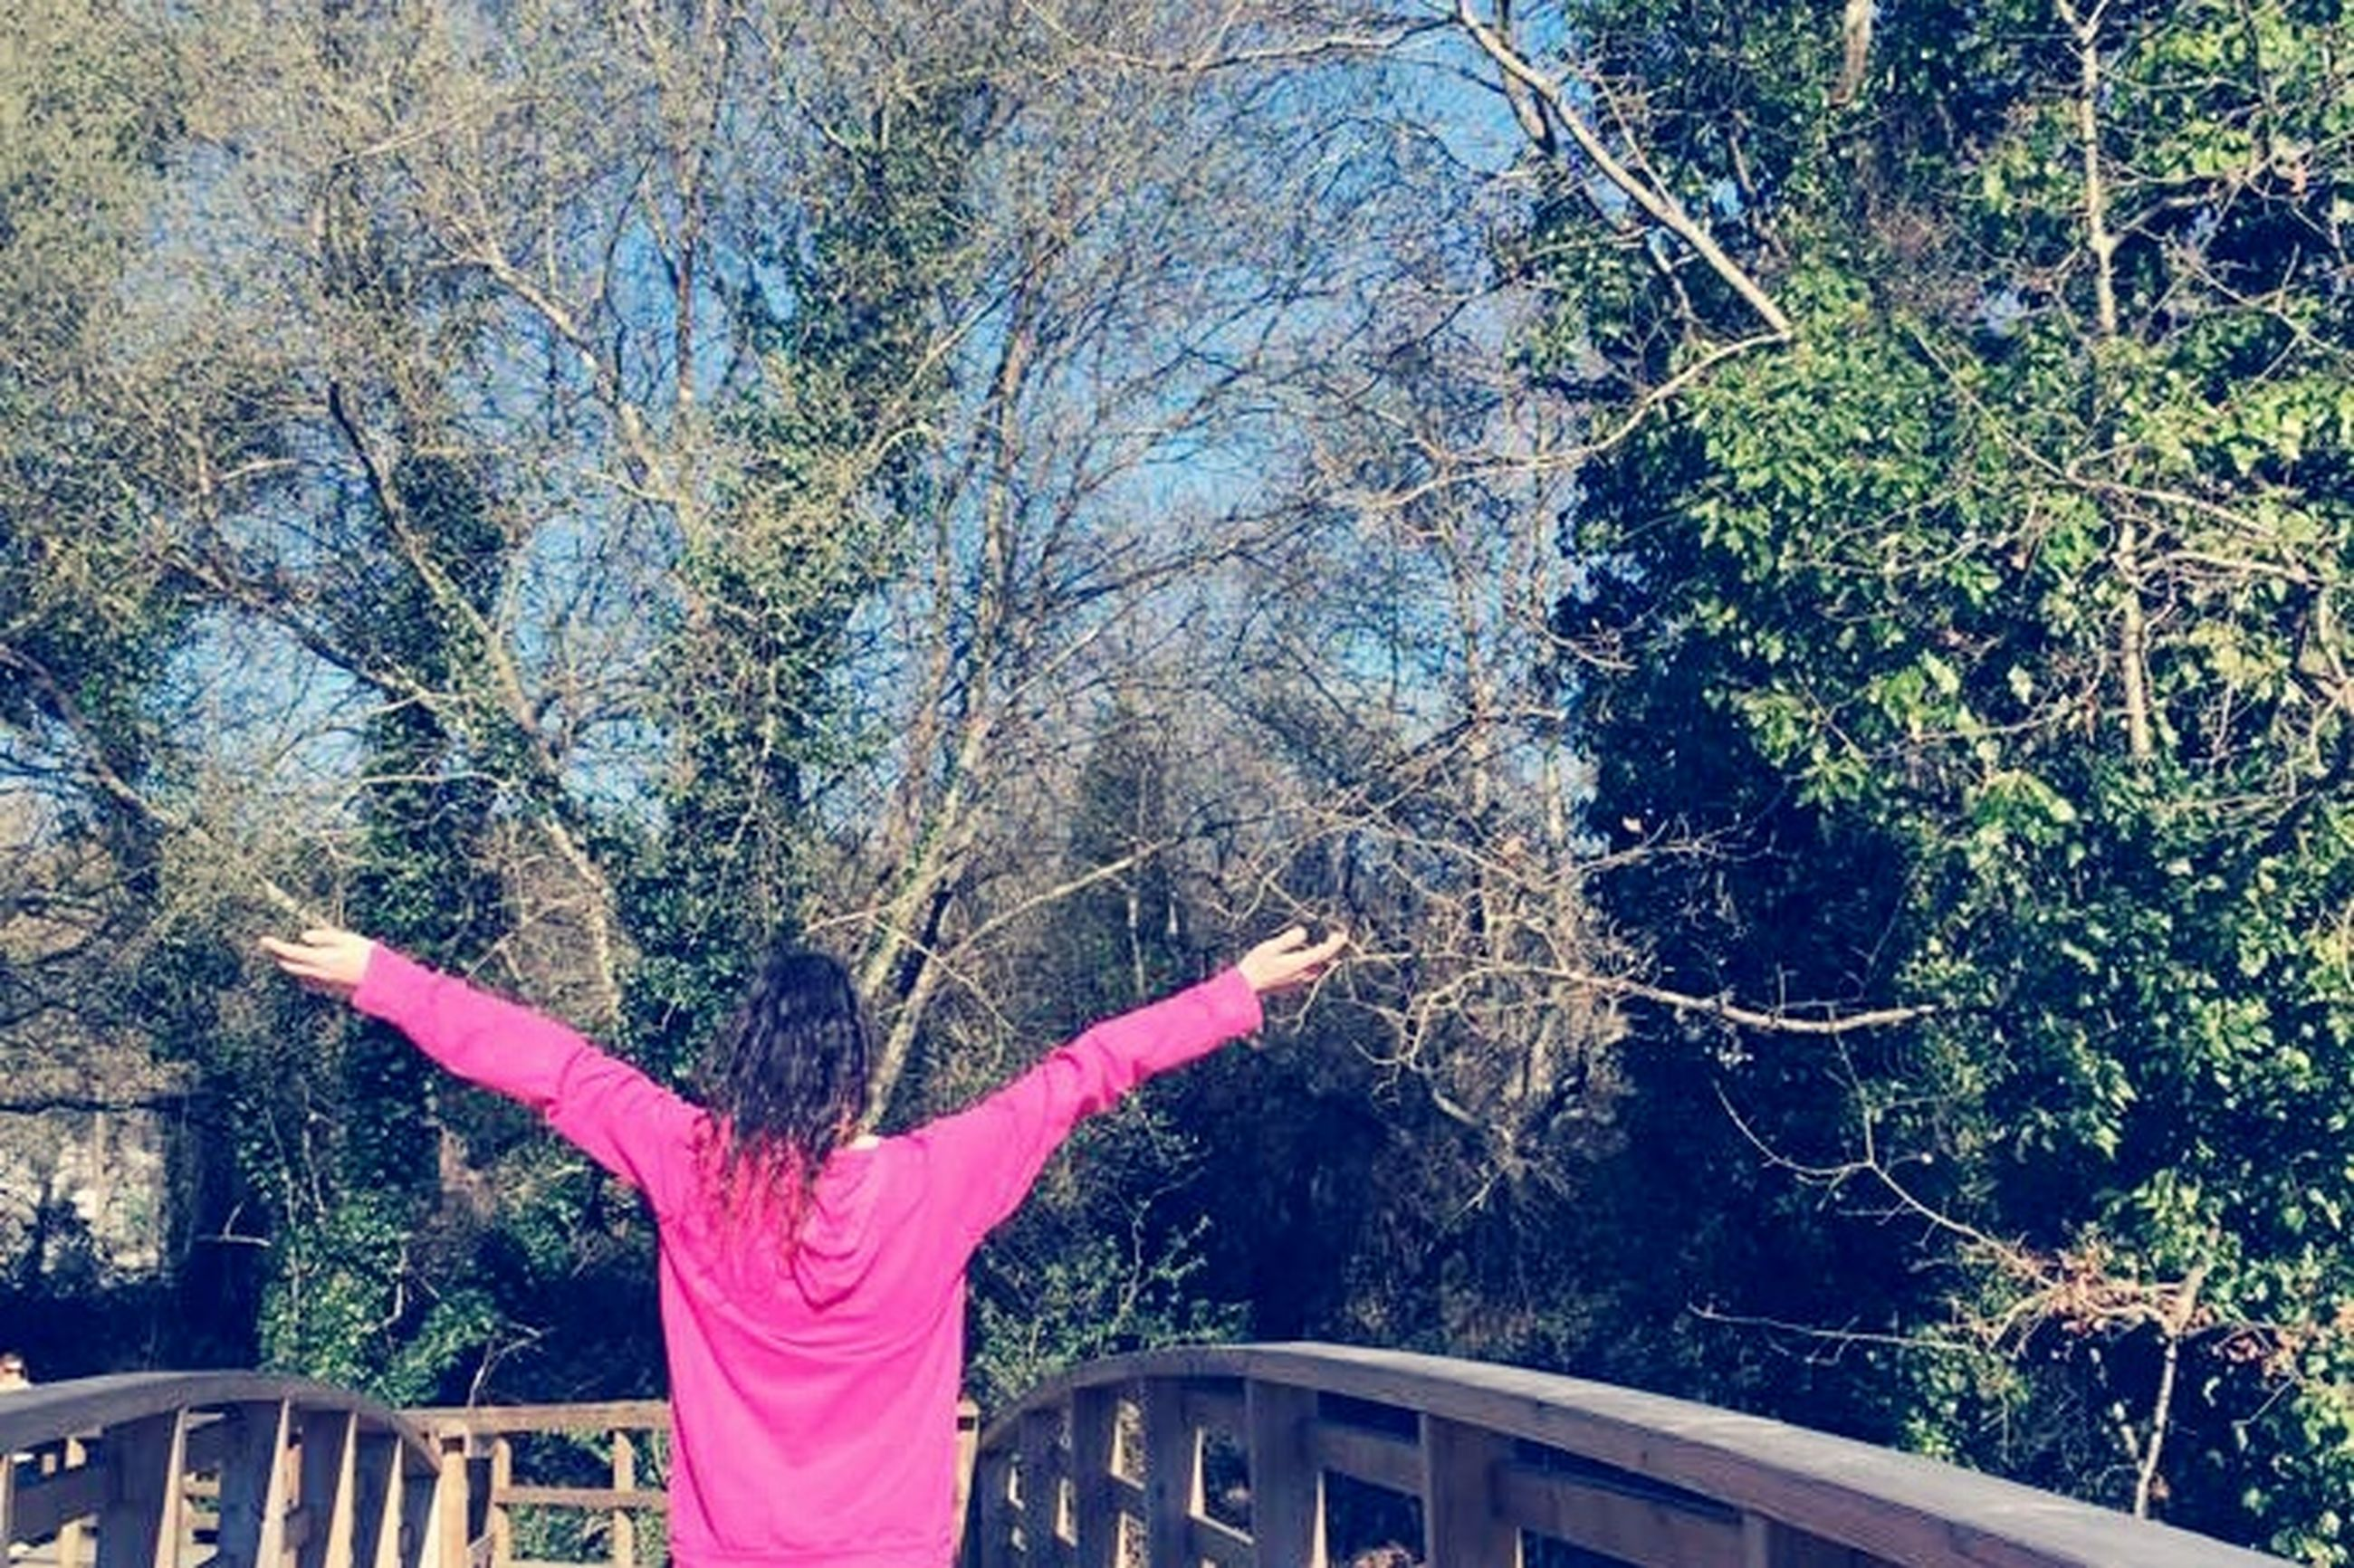 lifestyles, tree, leisure activity, person, casual clothing, water, standing, waist up, railing, day, three quarter length, outdoors, branch, holding, nature, young women, young adult, red